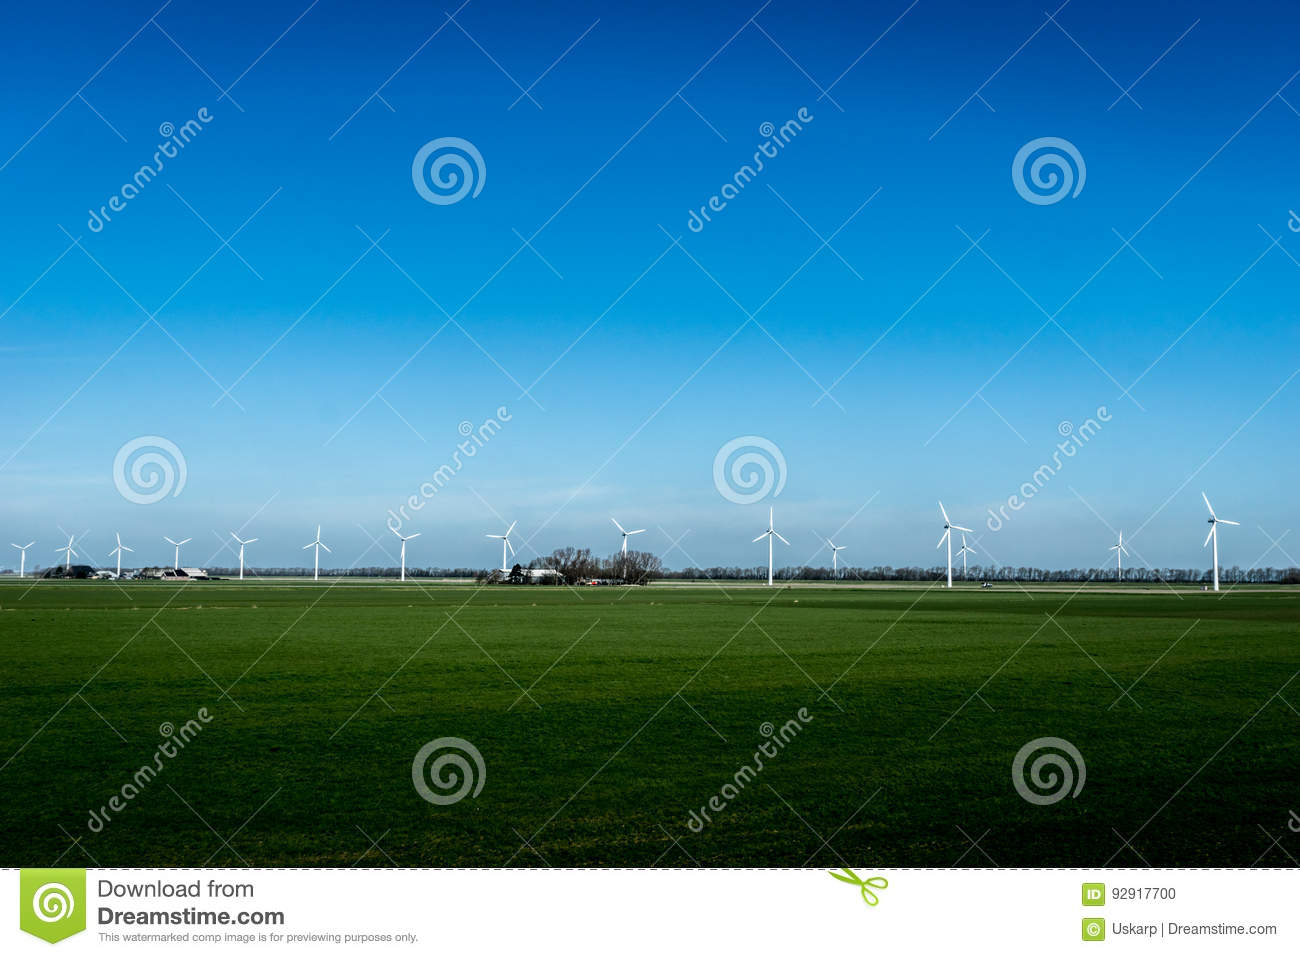 Landscape with wind energy turbines